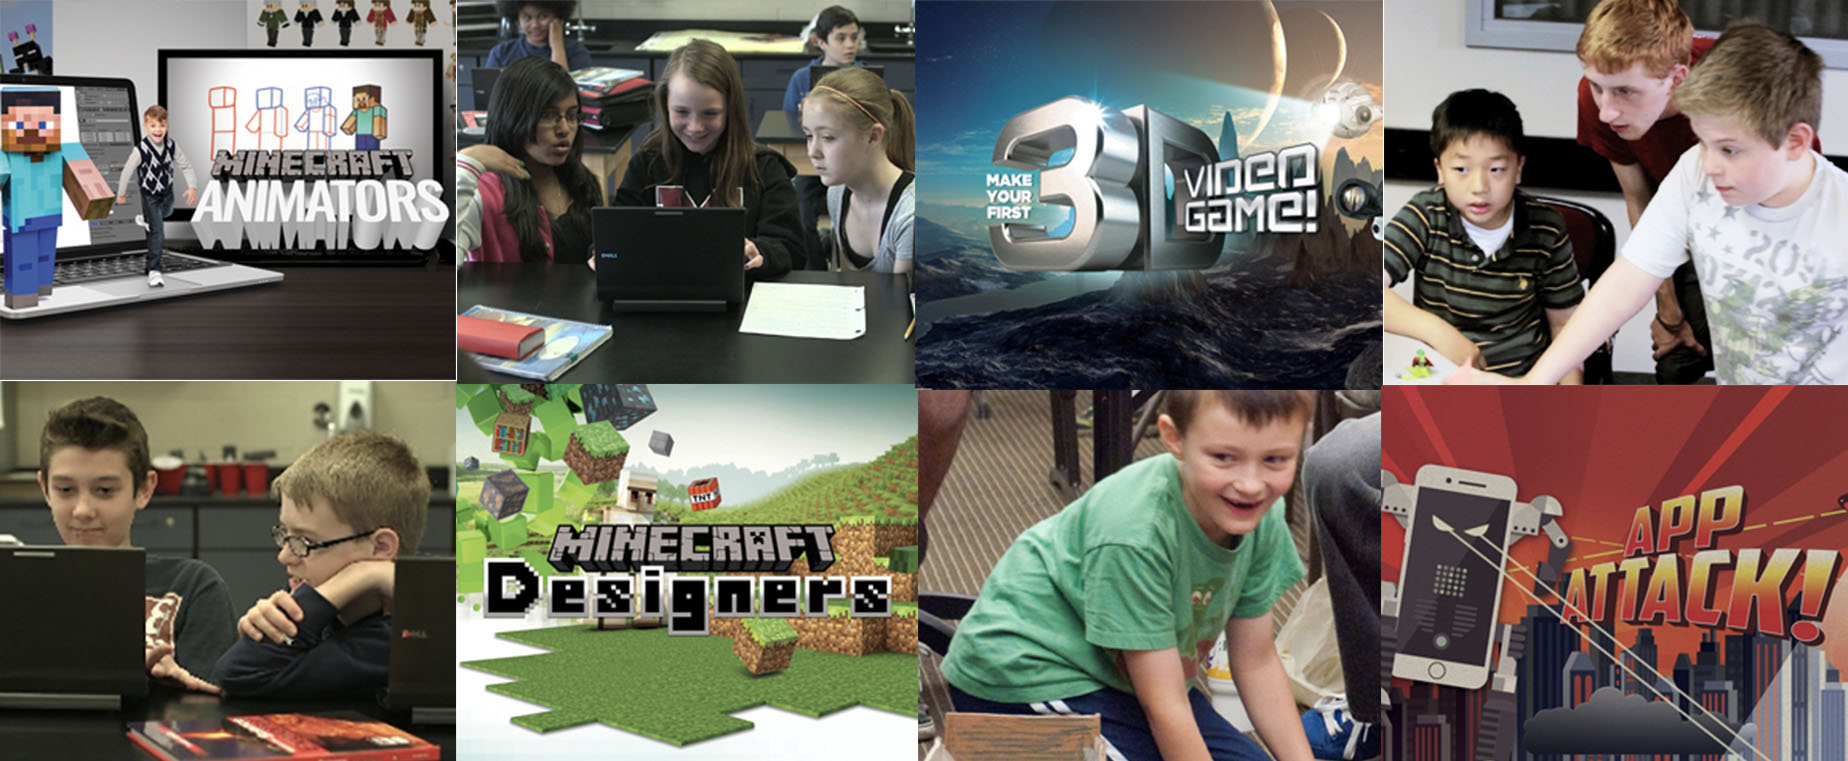 STEAM camp header image